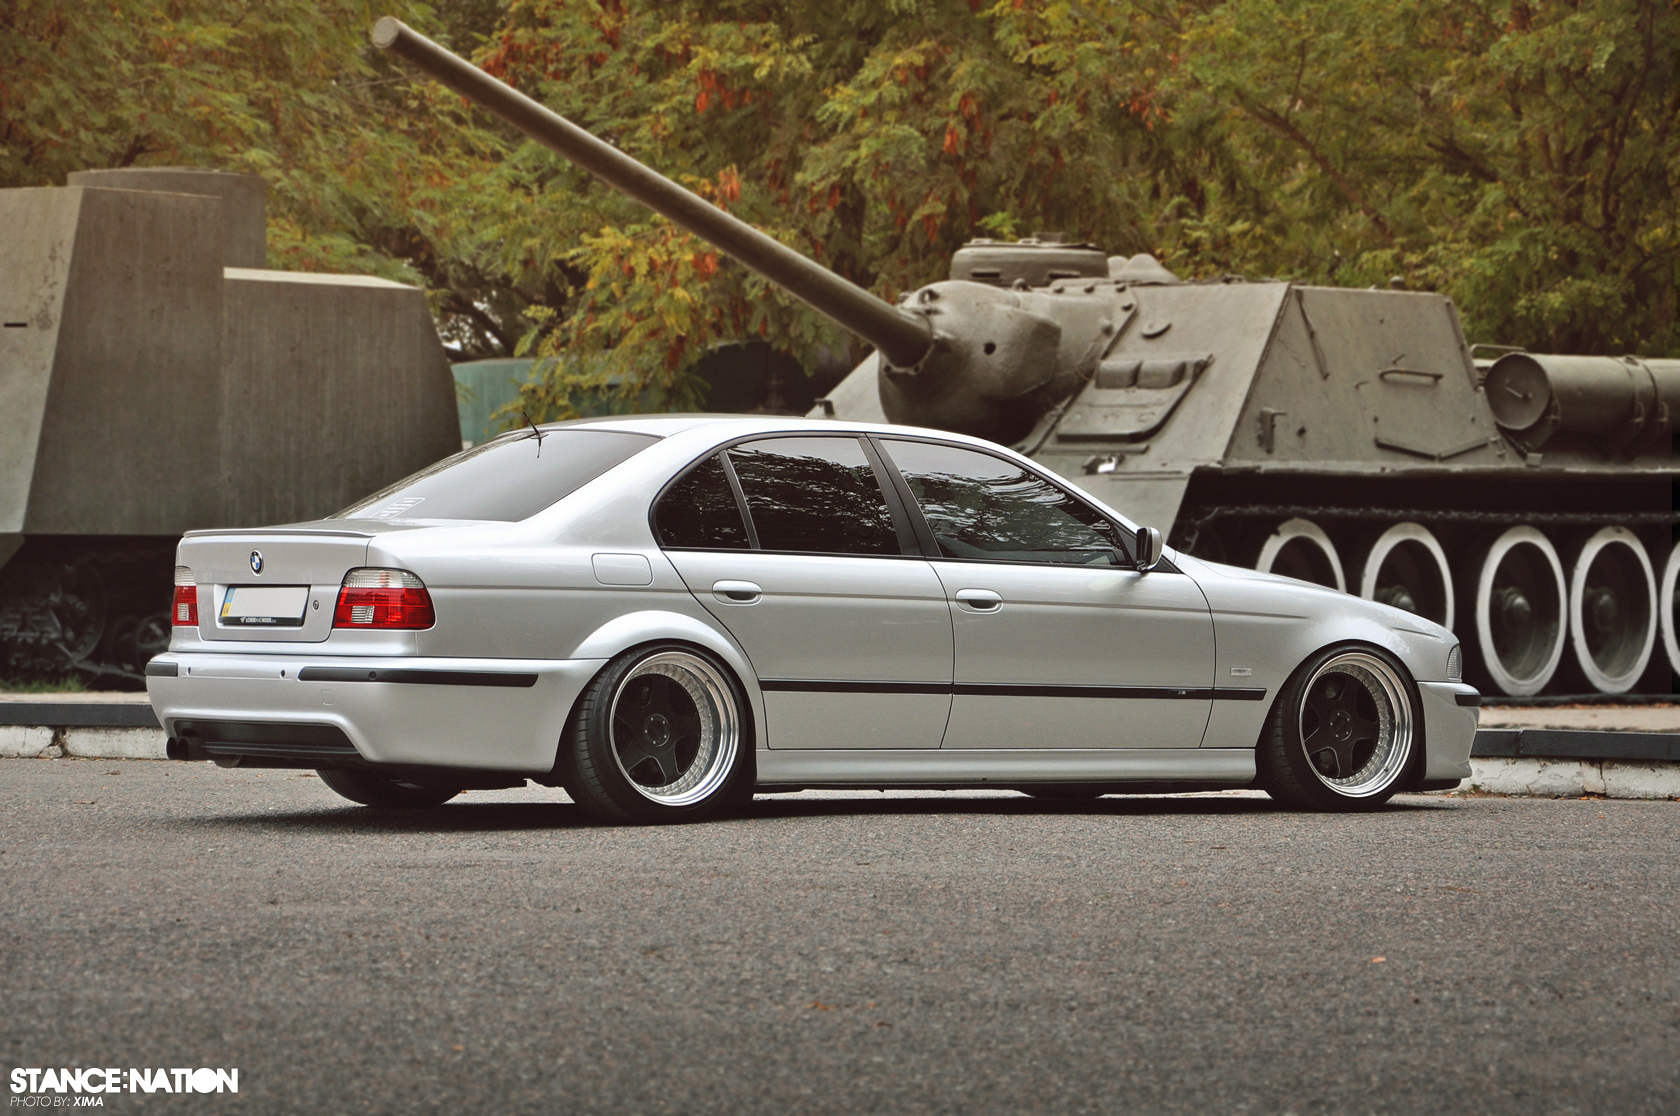 Bmw 530 E39 Tuning >> BMW M5 E39 aftermarket wheels... - Page 135 - BMW M5 Forum and M6 Forums